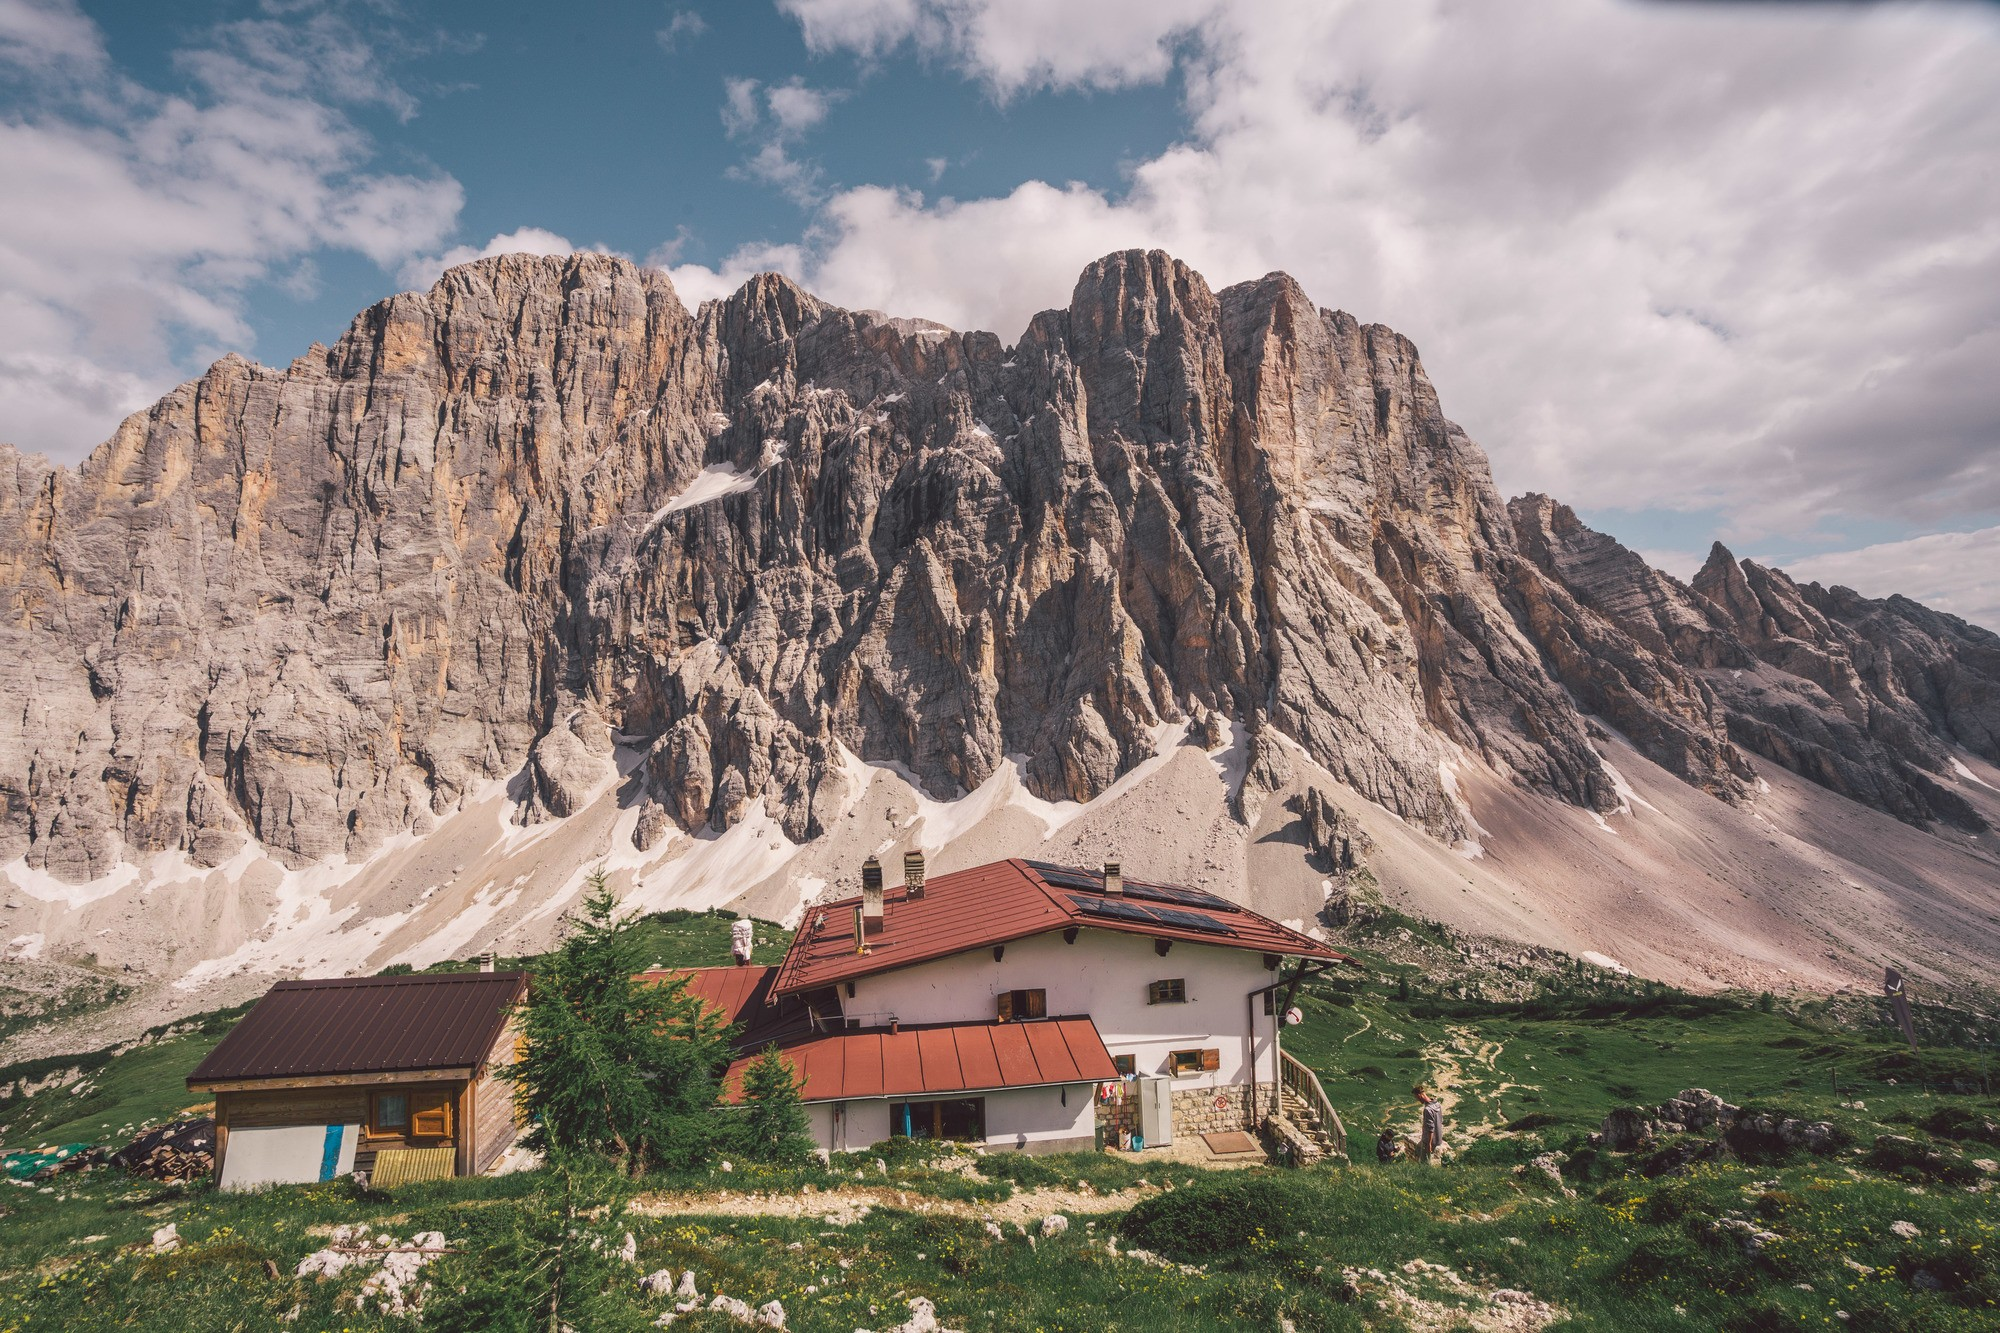 dolomites adventure travel